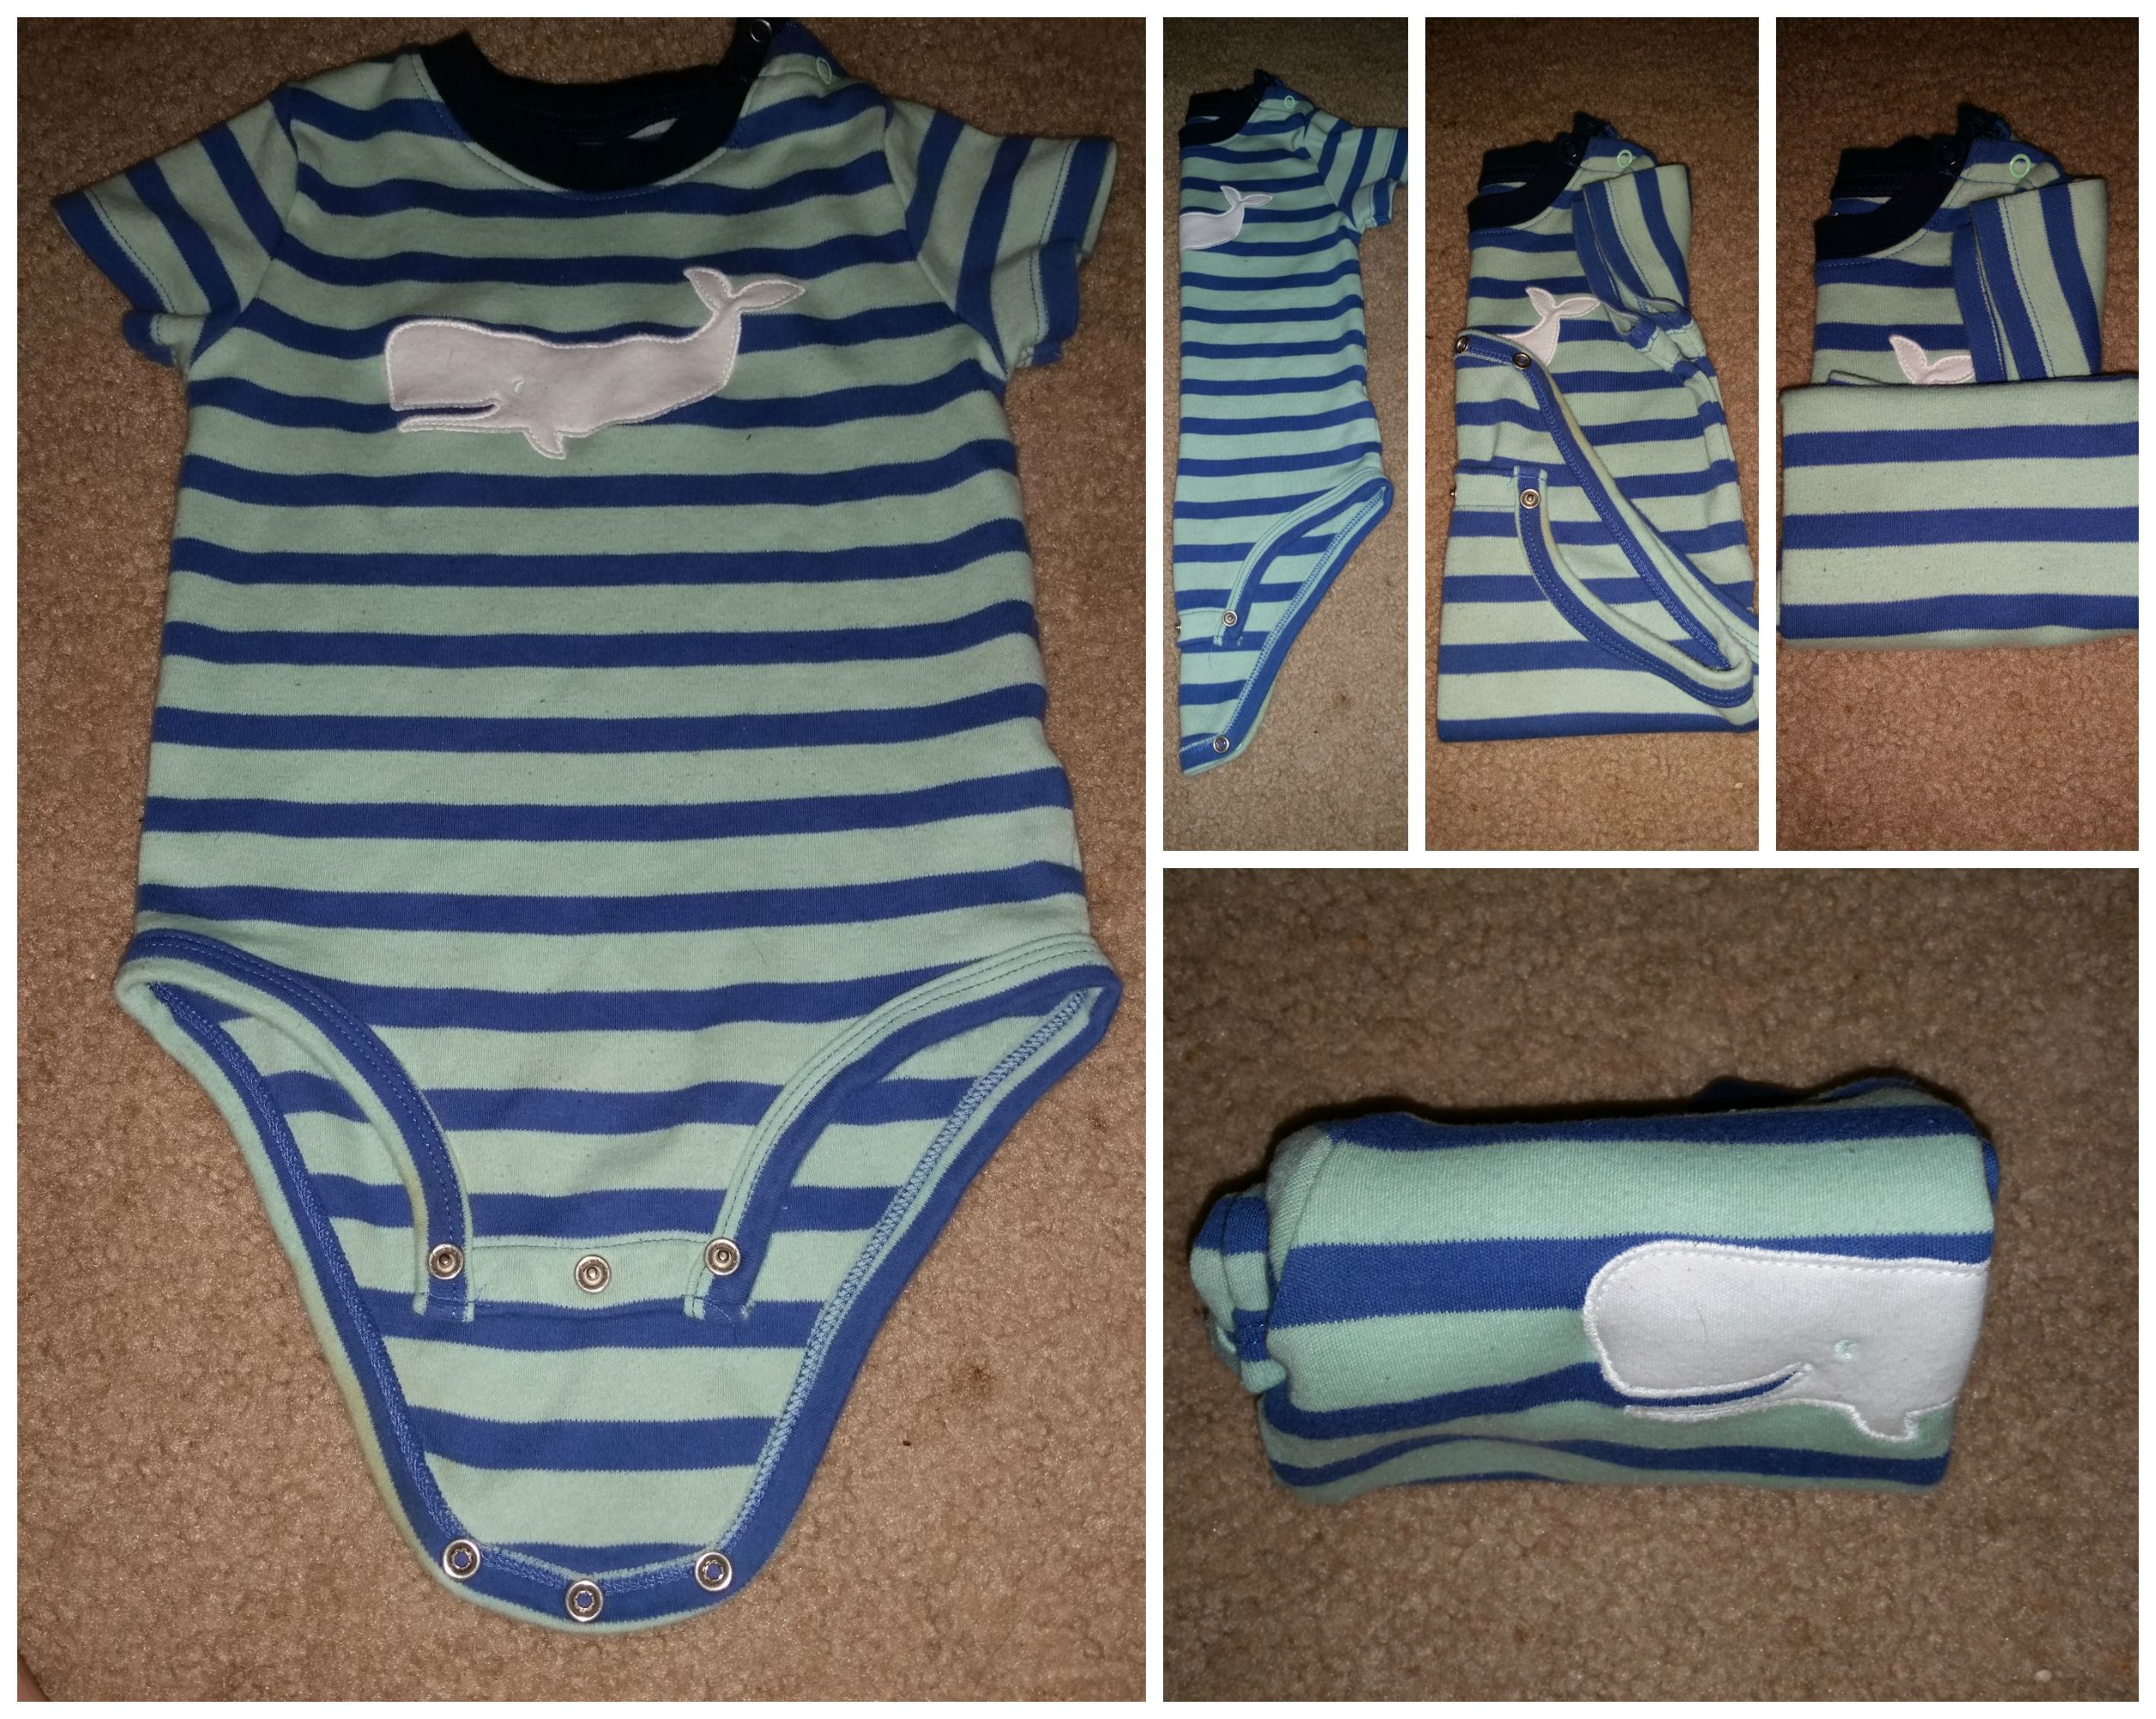 8f0e3a1732f Onesie Fold 1 More Baby Outfits Newborn